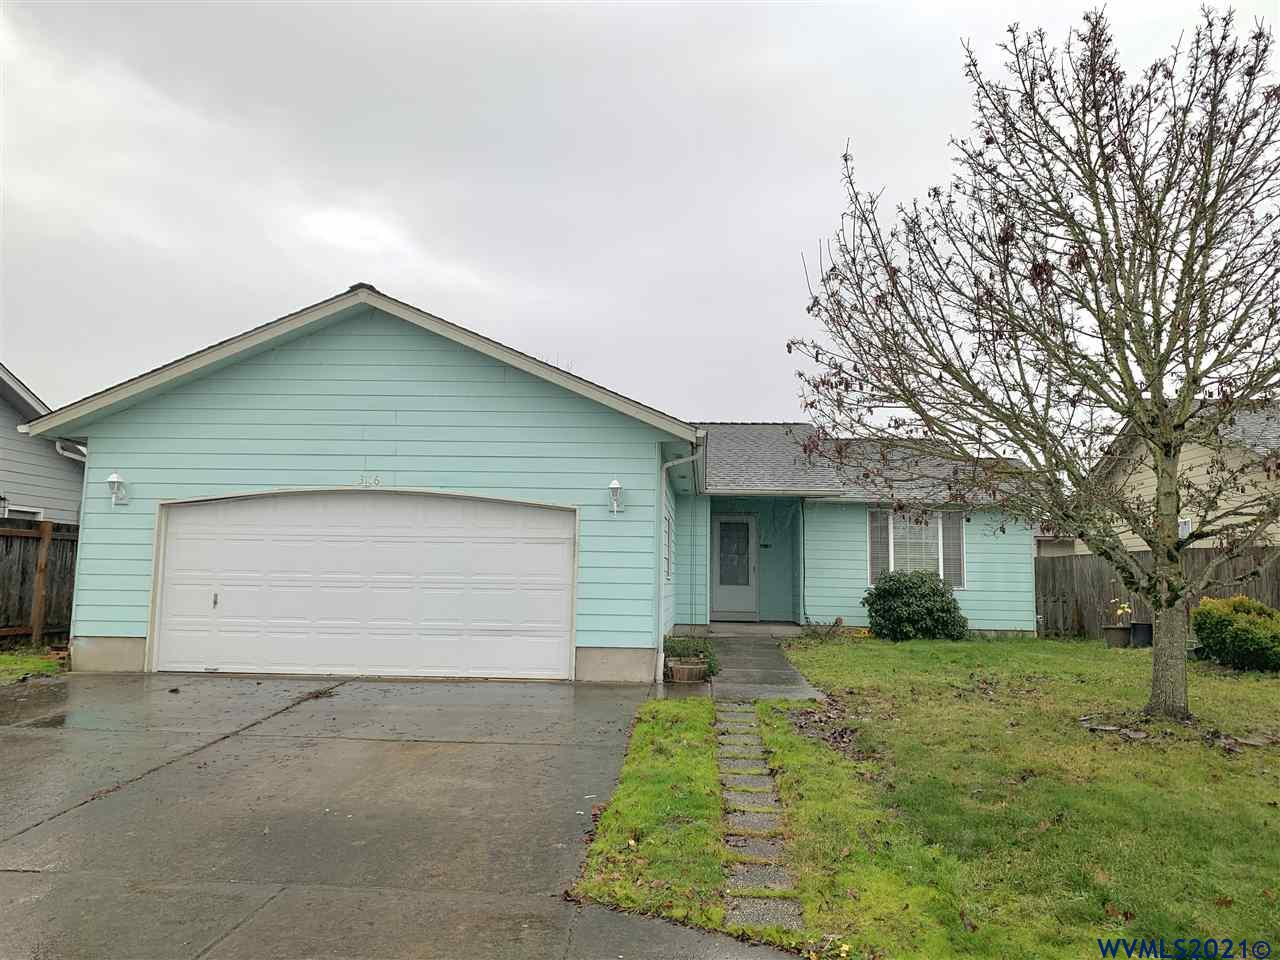 Great starter home convieniently located within walking distance to Lexington park, shopping, library and easy access to I-5.Home features beautiful laminated floor in all 3 bedrooms, living room and kitchen! No carpet in this house. All kitchen appliances included in the sale. Fully fenced back yard has a shed for additional storage.